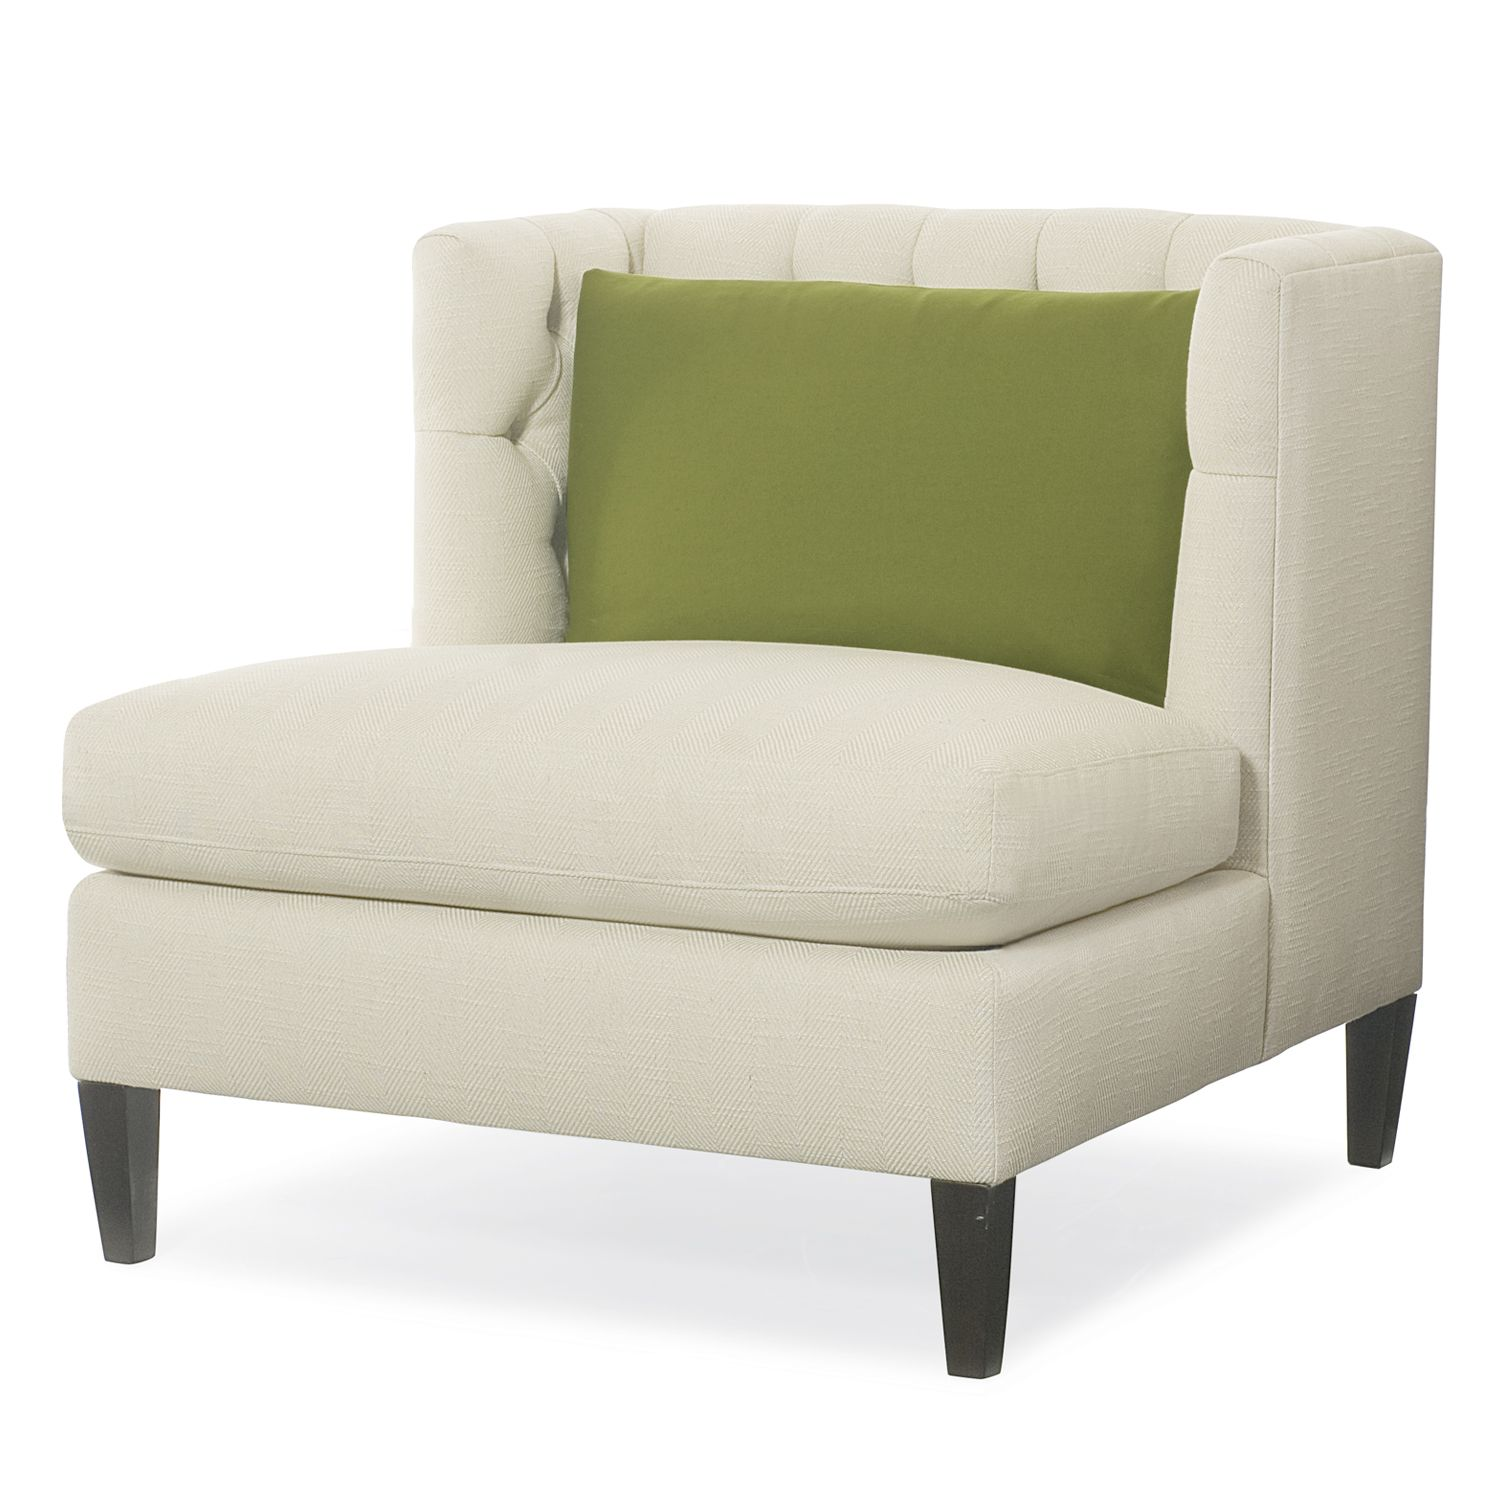 abbey armless chair modern tufted chair in white kiwi green accent pillow